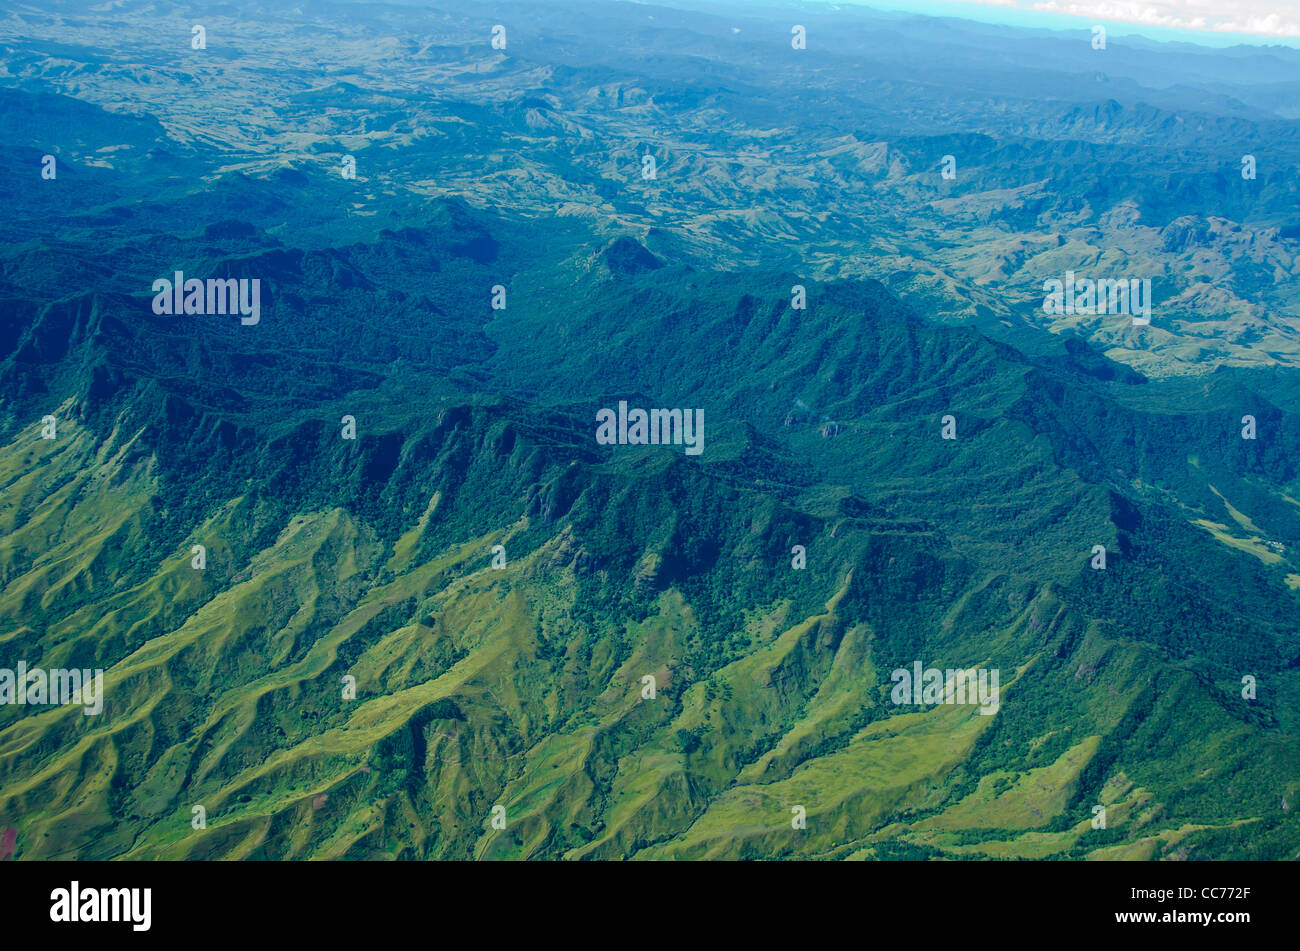 Fiji aerial green mountains deep valleys wide open empty space - Stock Image